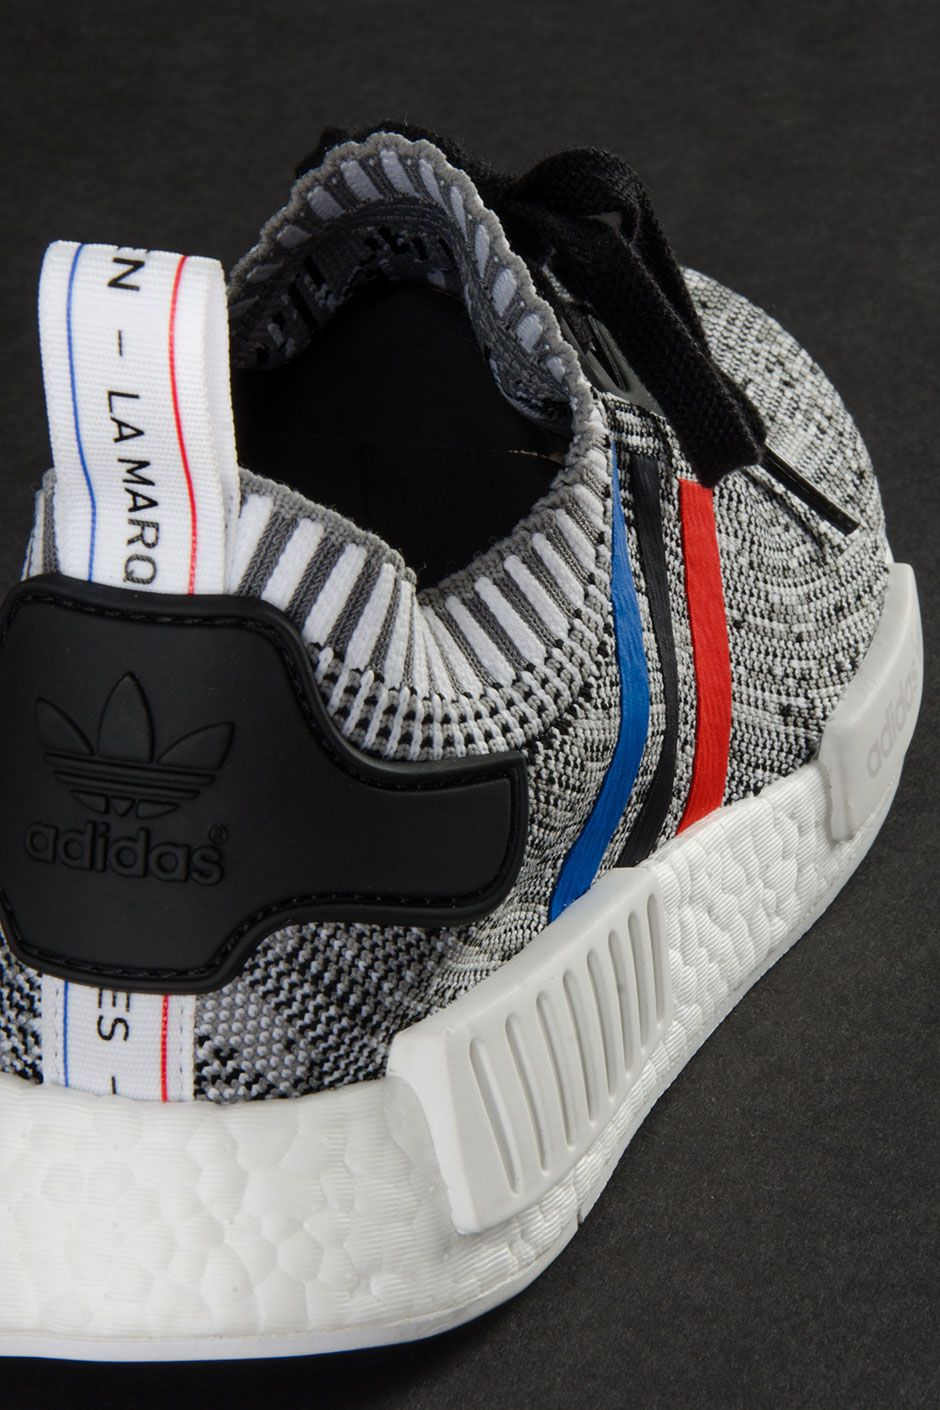 "e638ec3b3 A Detailed Look At The adidas NMD R1 Primeknit ""Tri-Color"" Pack Page 2 of 4  - SneakerNews.com"